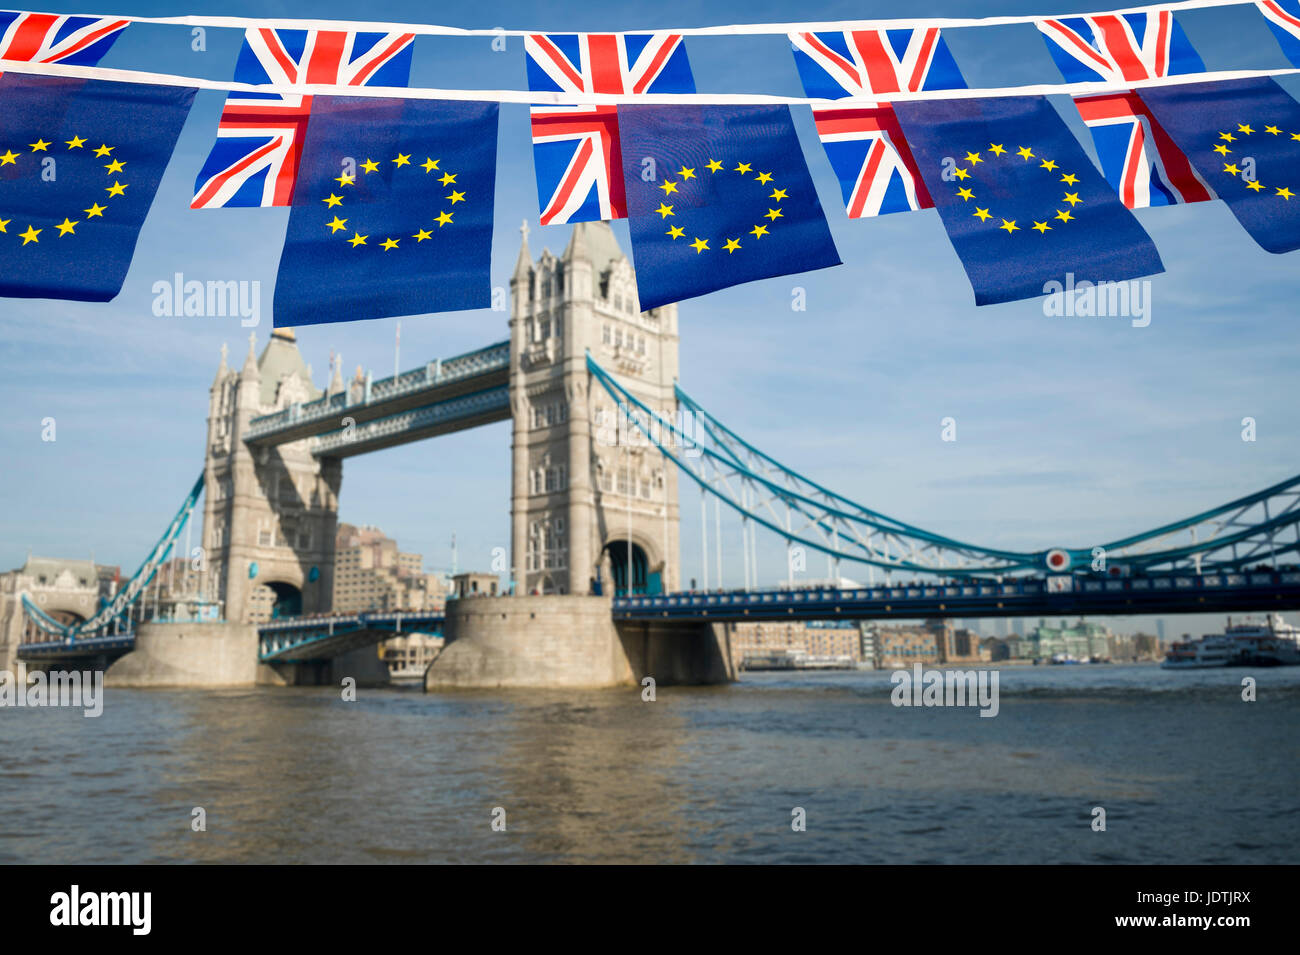 EU and UK bunting flags flying in front of the London, England skyline over the River Thames at Tower Bridge - Stock Image